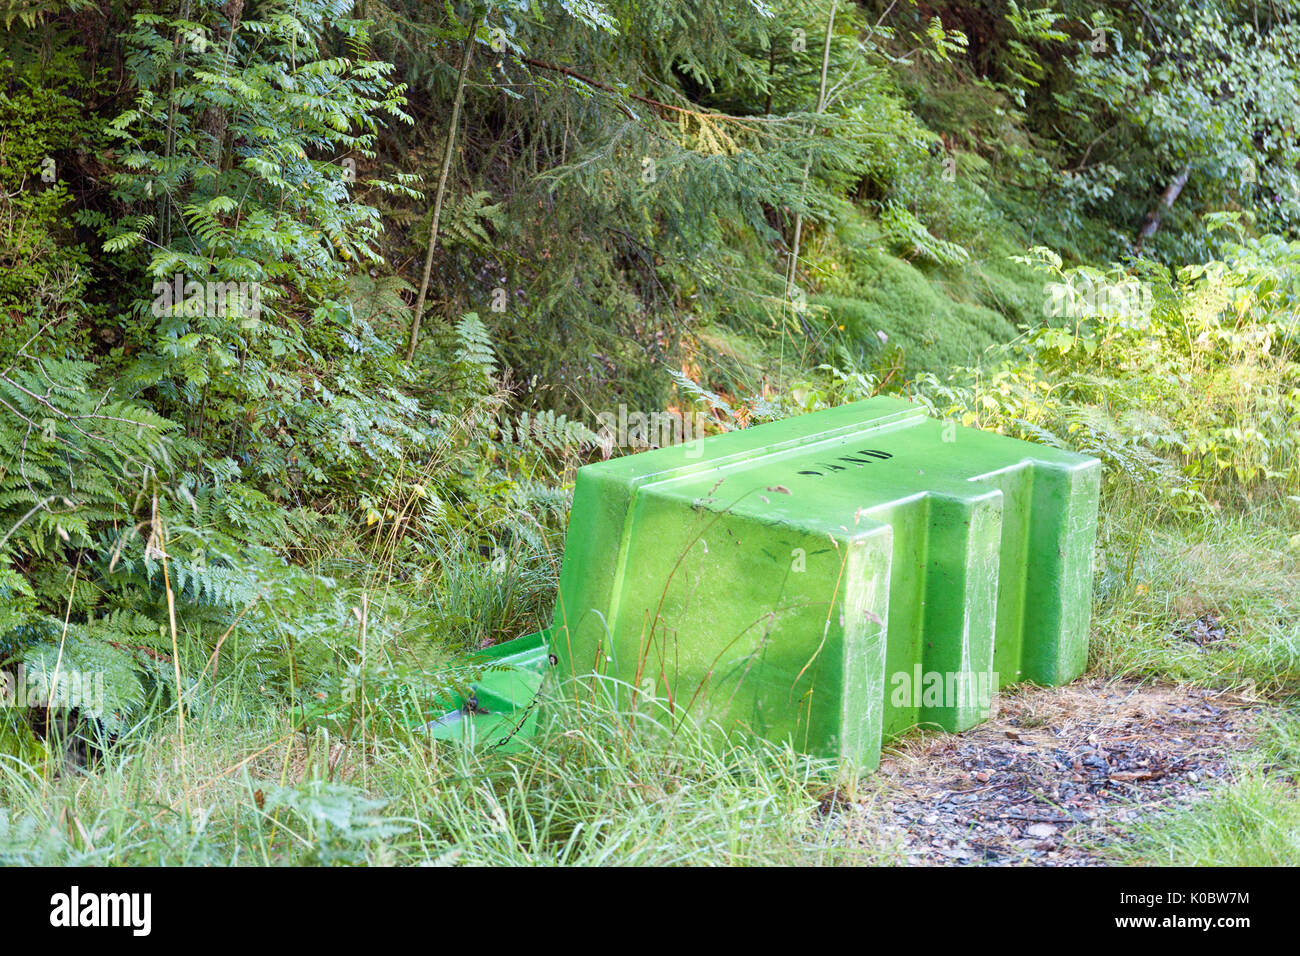 Overturned and emptied green sand grit bin box  Model Release: No.  Property Release: No. - Stock Image